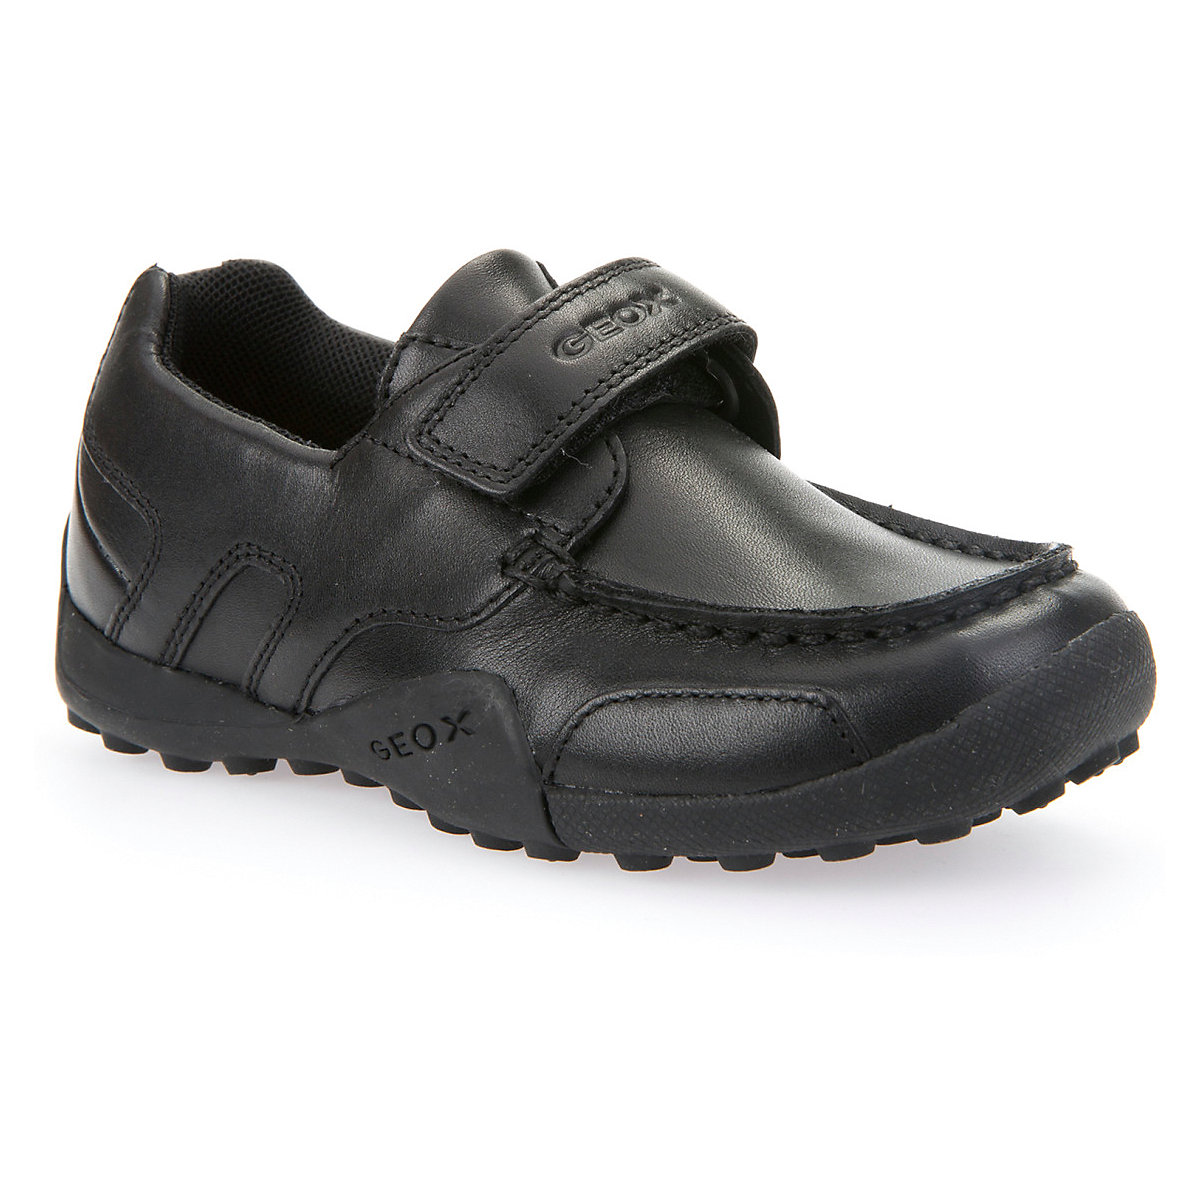 GEOX Children Casual Shoes 8786518 Boys for boy childrens spring/summer Leather school shoes casual middle vamp men leather shoes